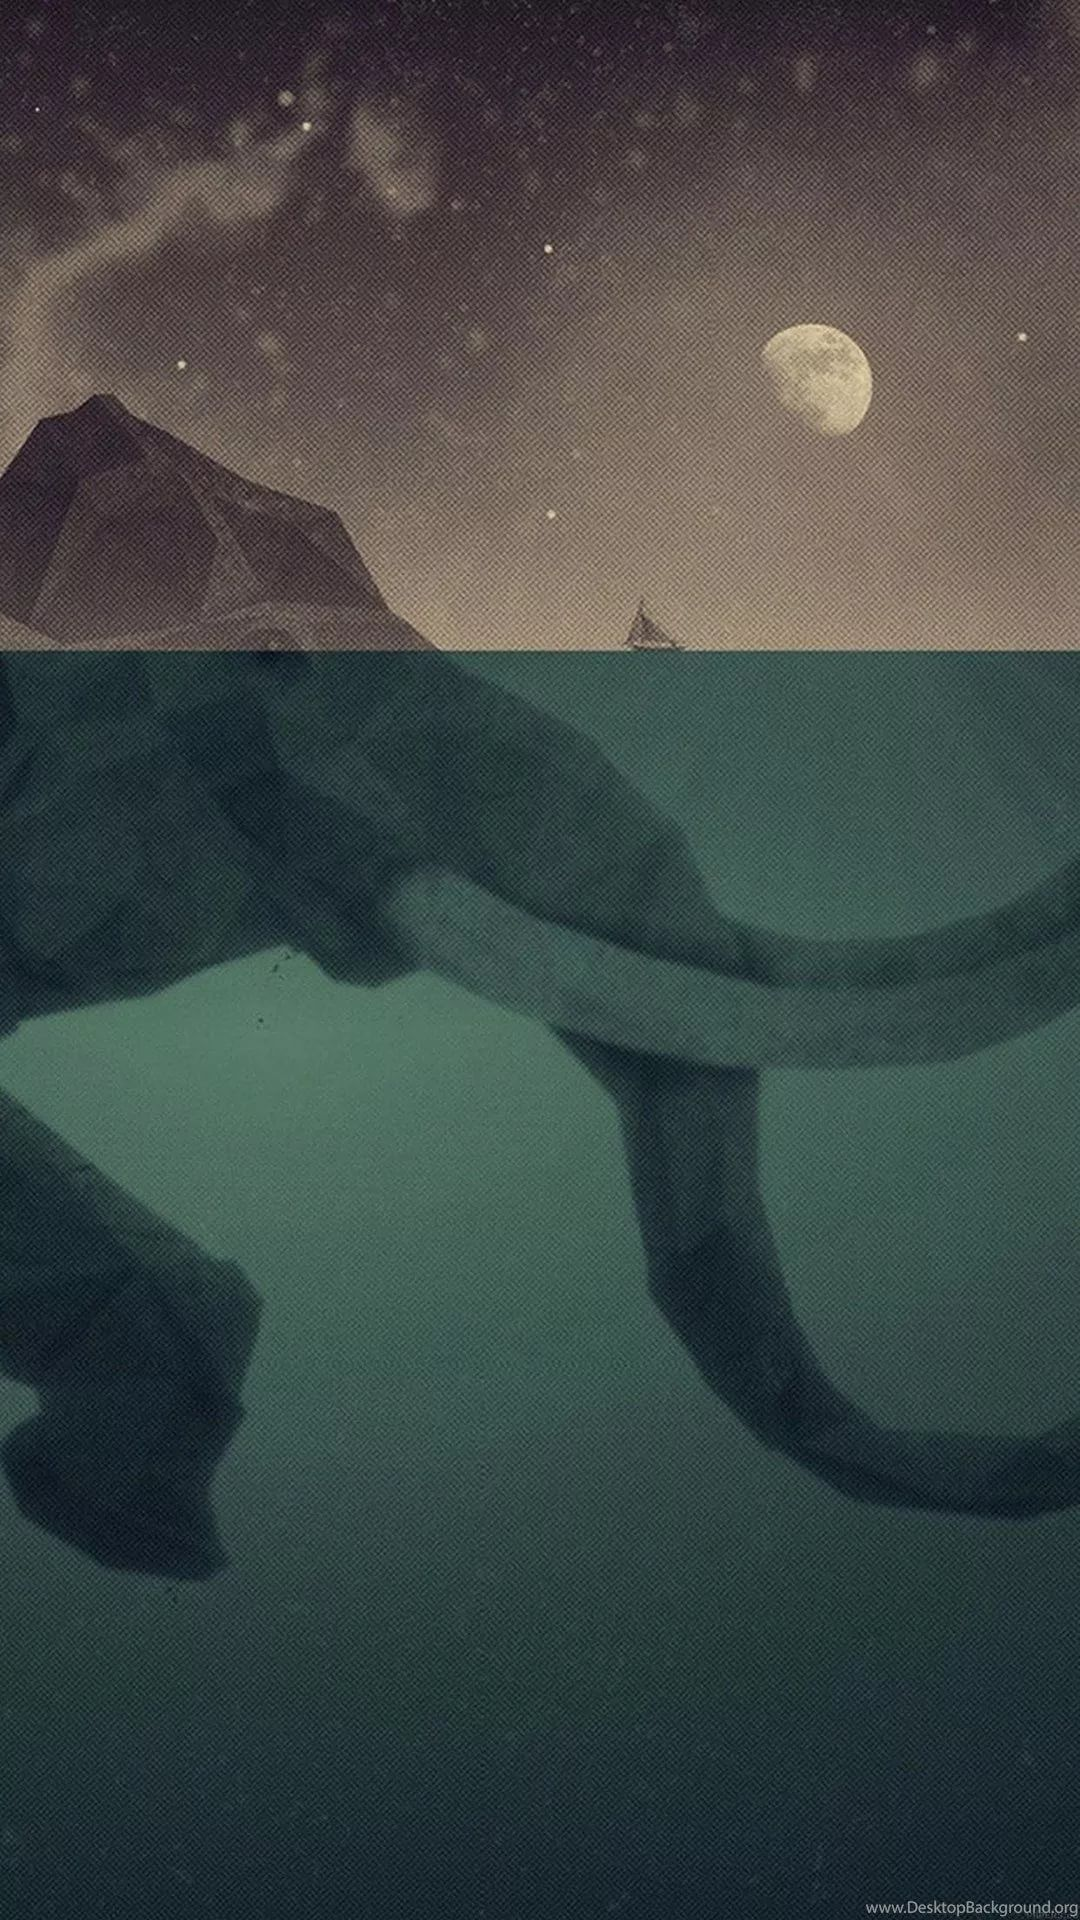 Elephant Tumblr wallpaper for android